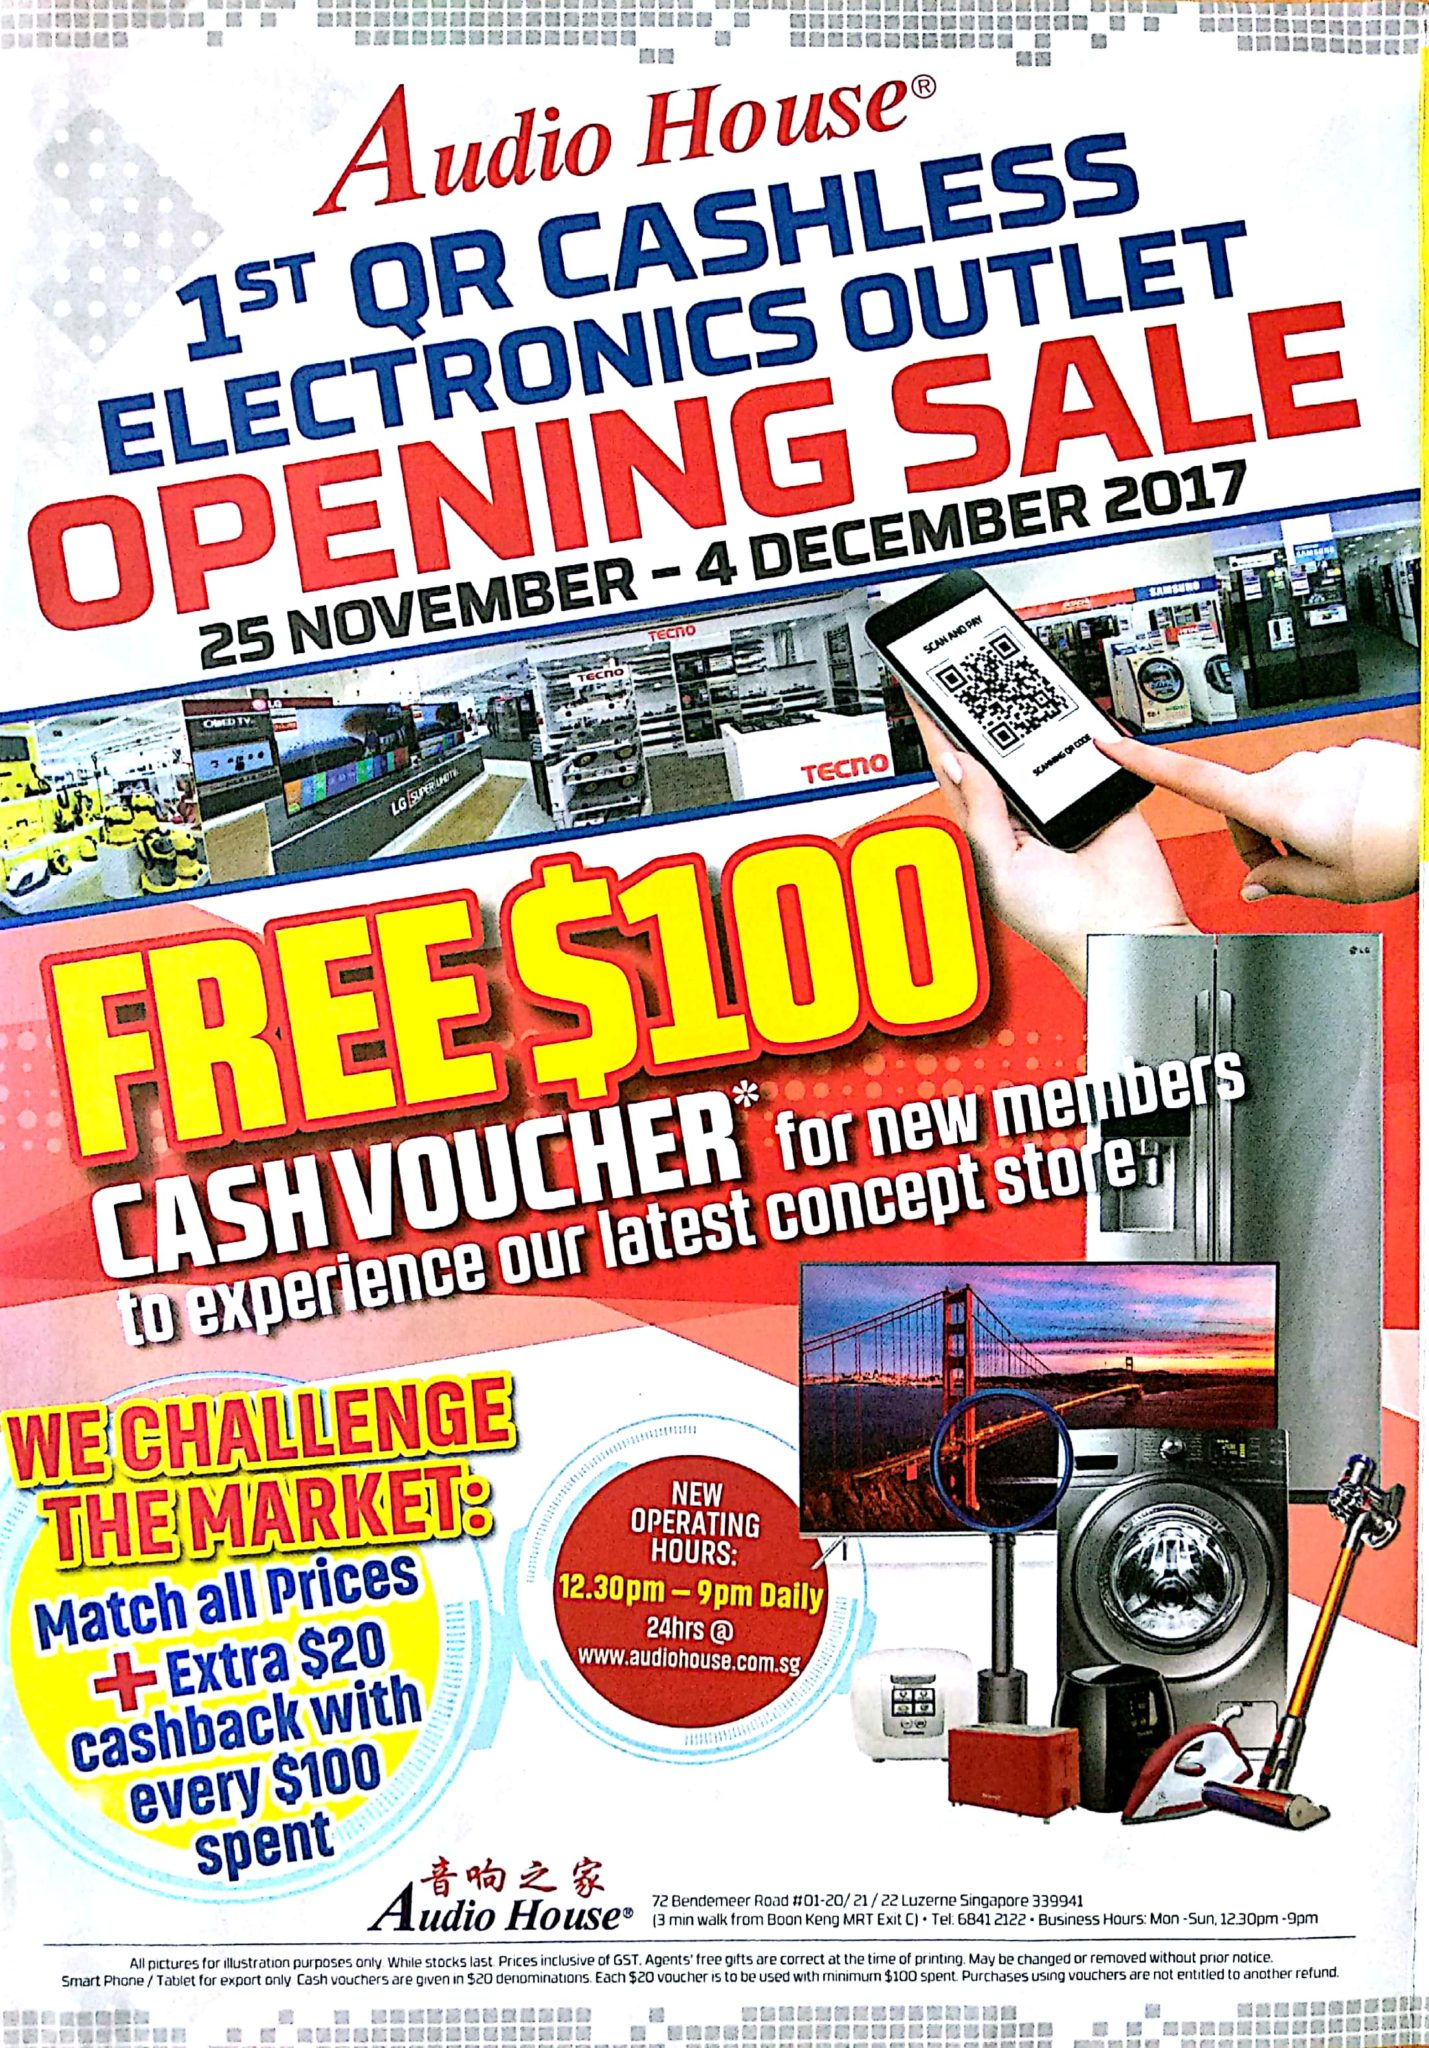 1st QR Cashless Elecrtronics Outlet Opening Sale | 25 Nov - 4 Dec 2017 | Audio House | Brochure pg1